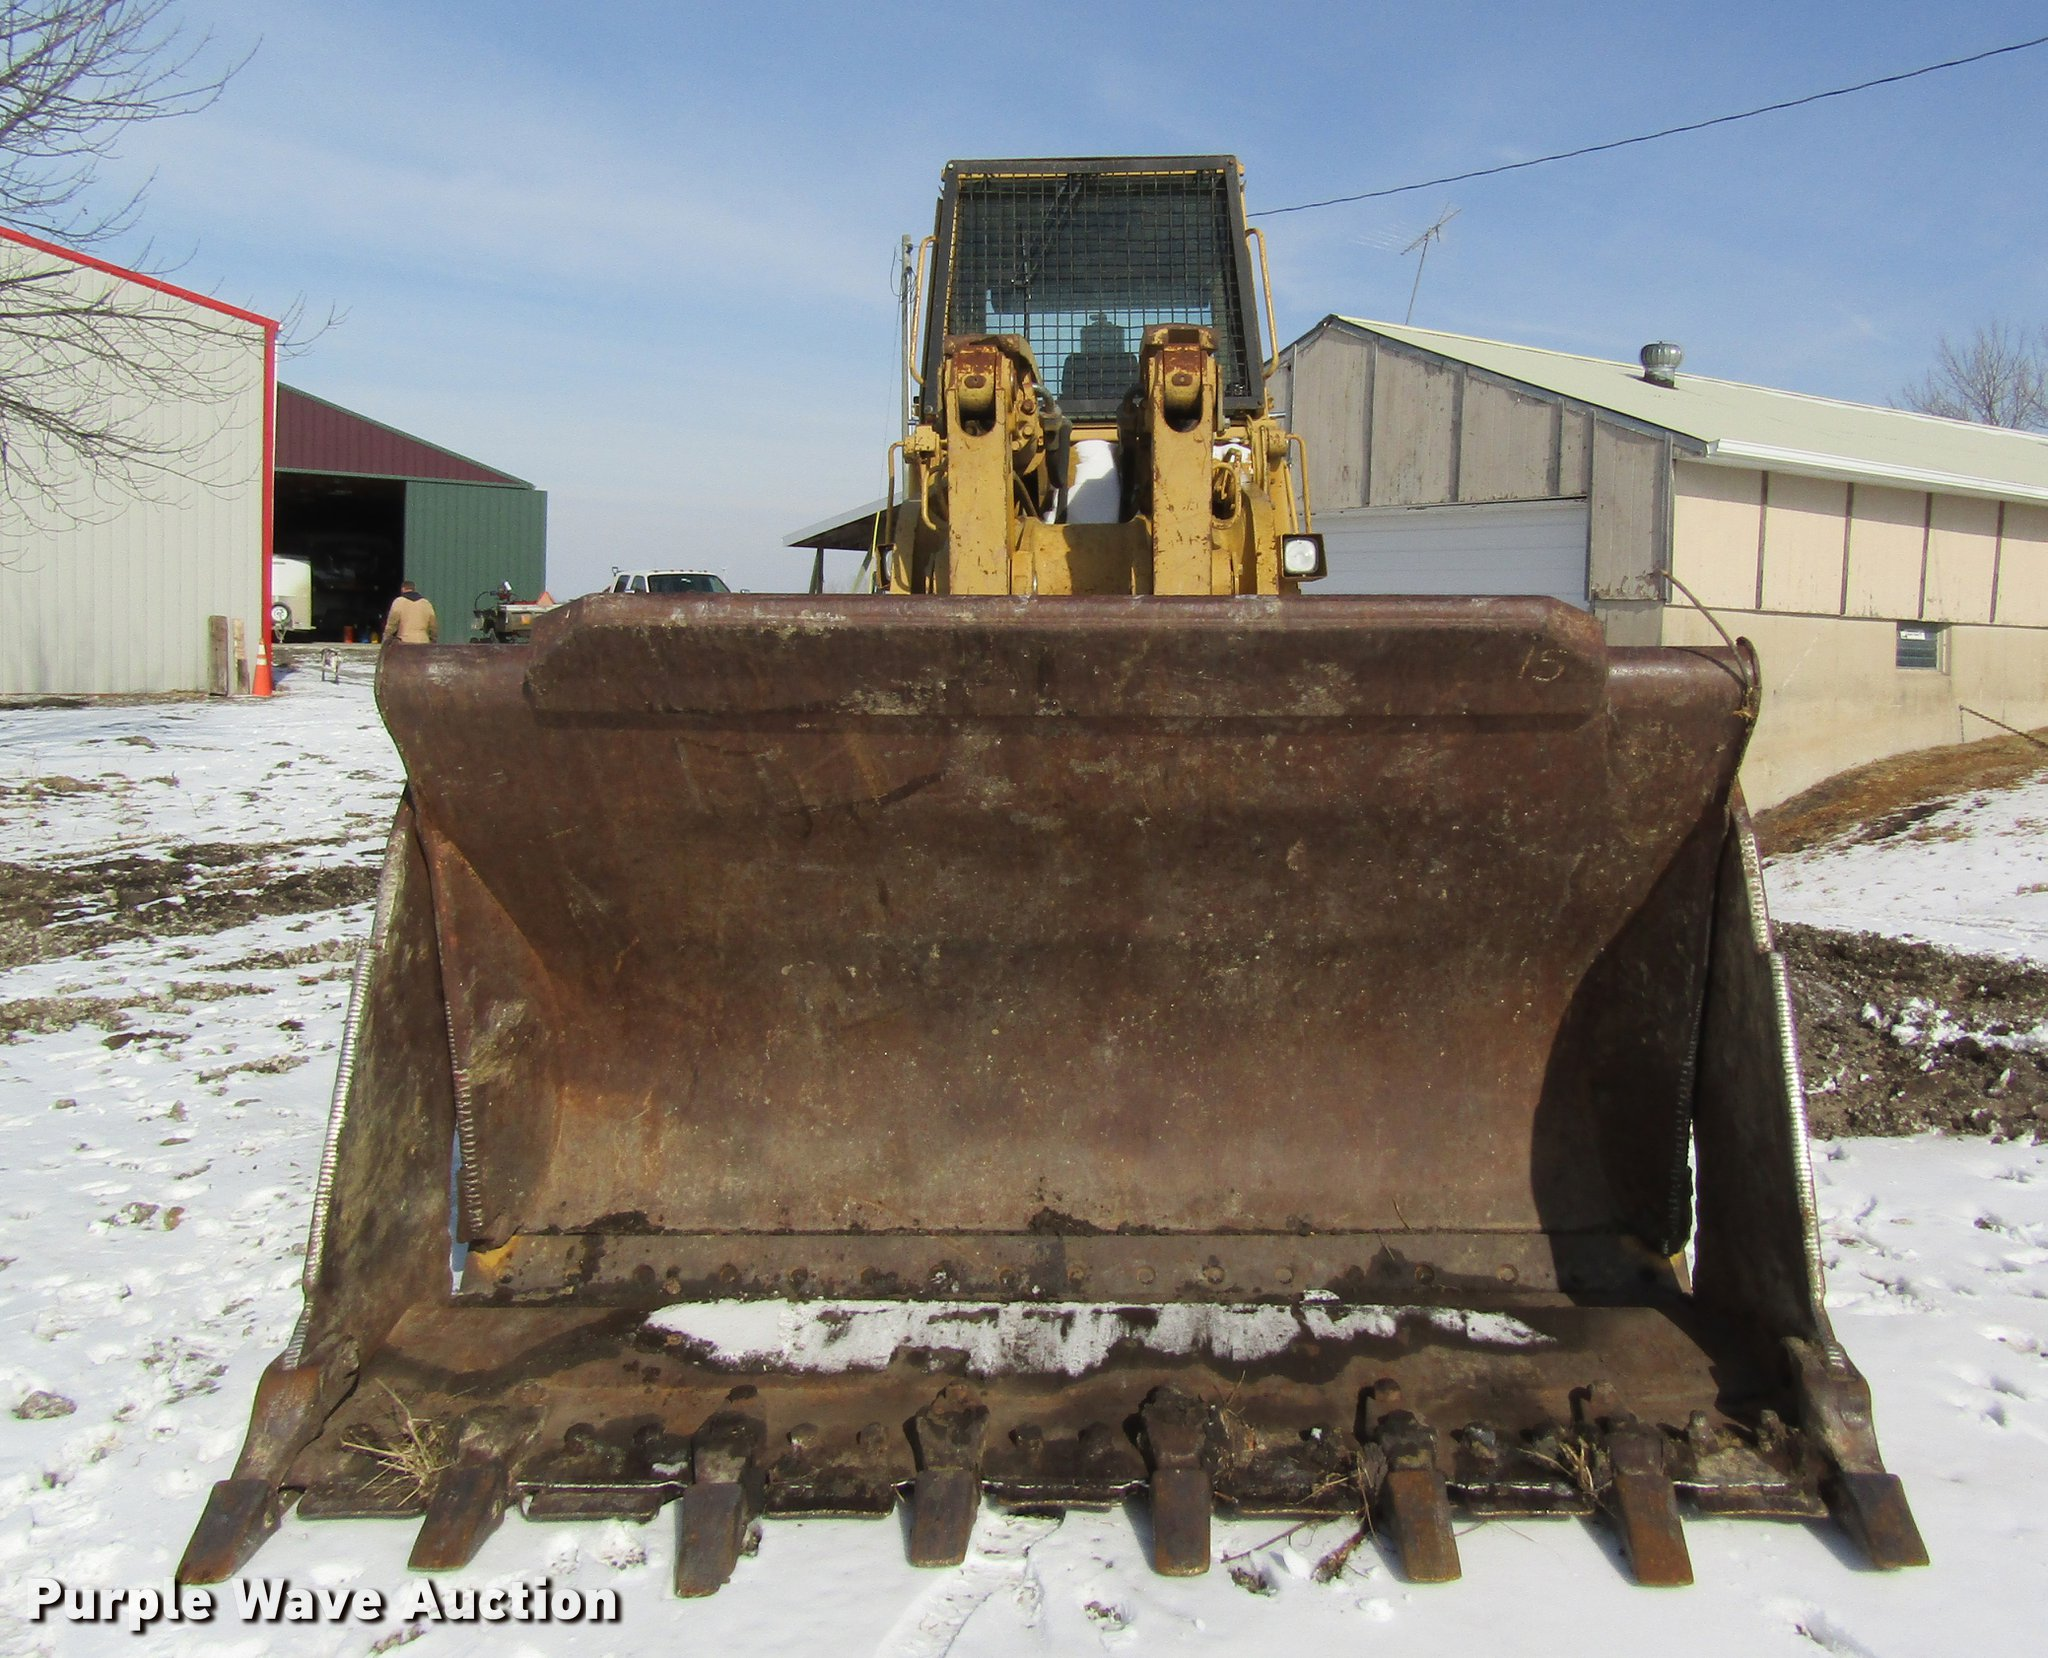 1999 caterpillar 973 track loader item db9754 sold marc caterpillar 973 track loader full size in new window publicscrutiny Choice Image